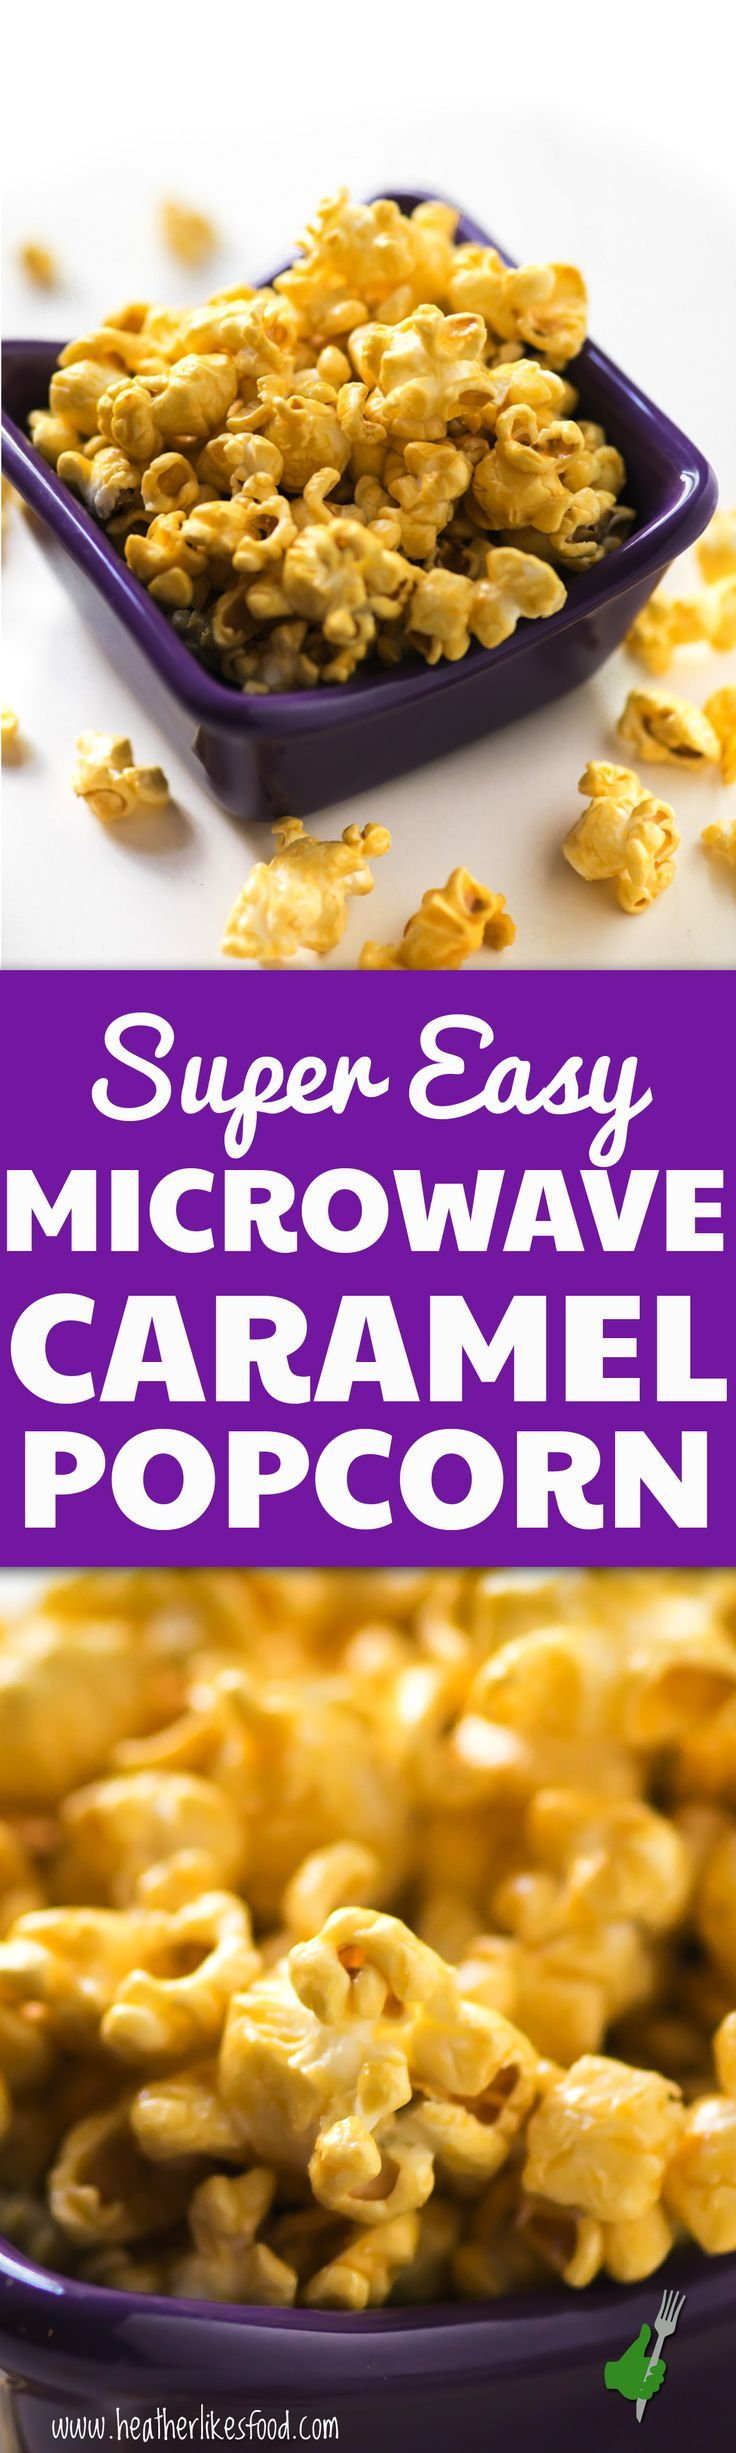 This is my absolute favorite way to make the easiest most fail-proof crunchy, sweet microwave caramel popcorn!